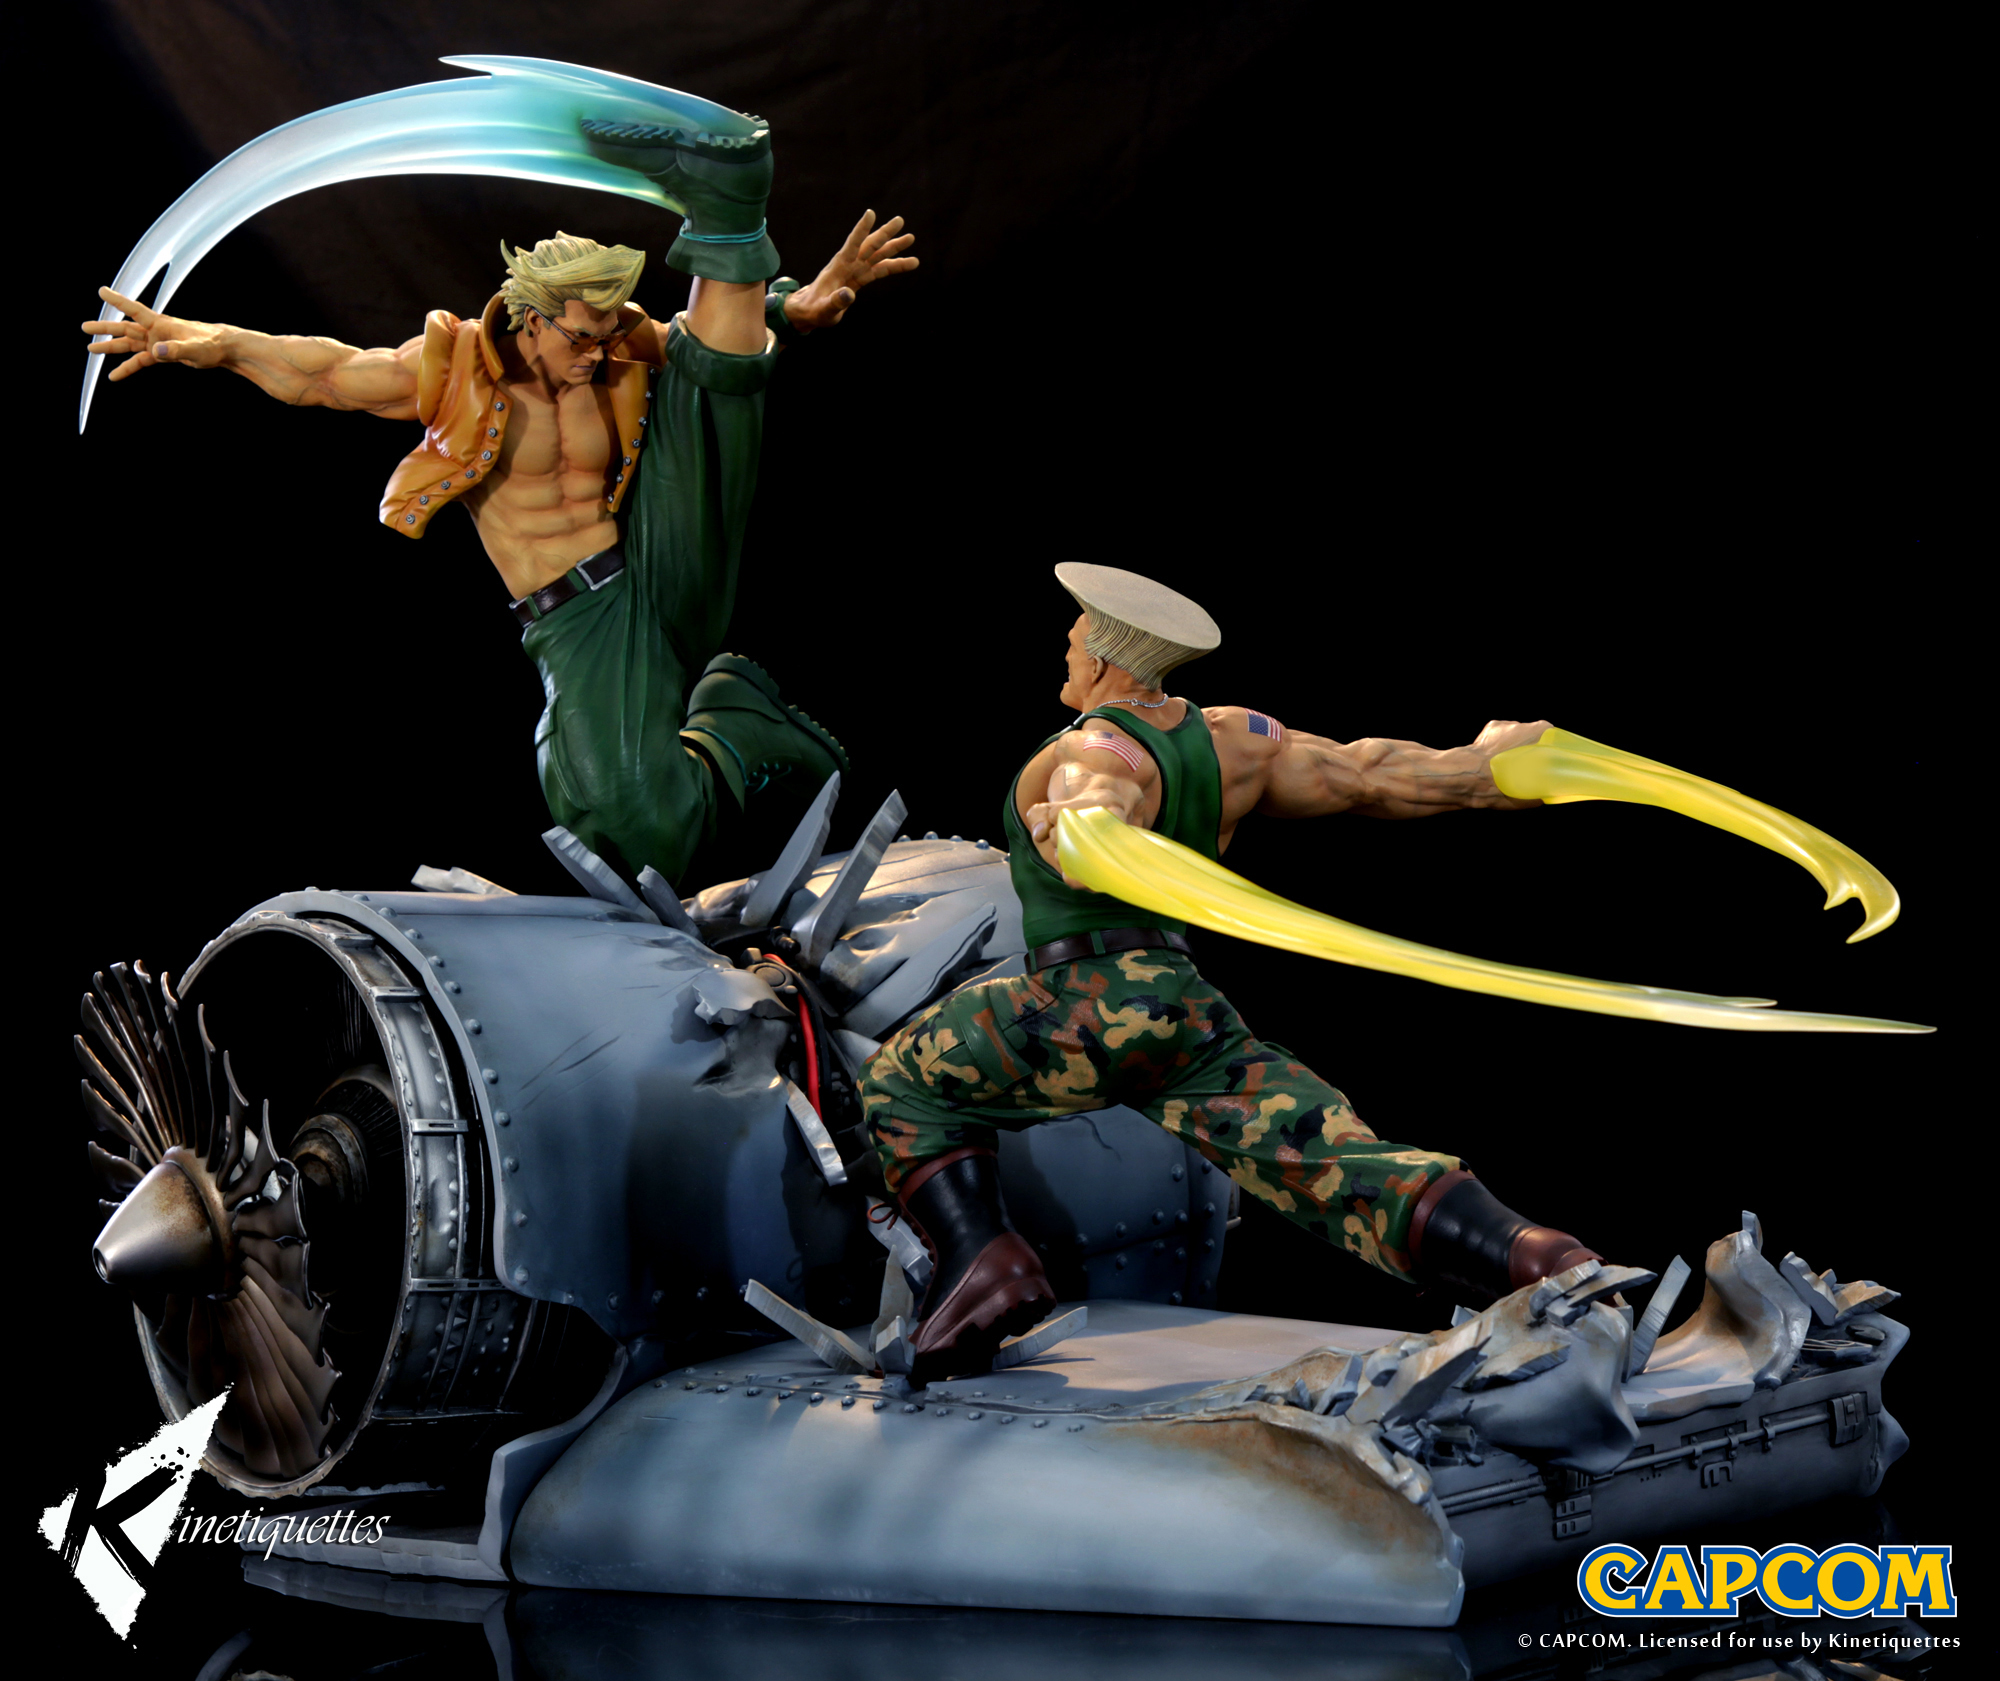 War Heroes Guile ガイル 1 6 Scale Diorama Kinetiquettes